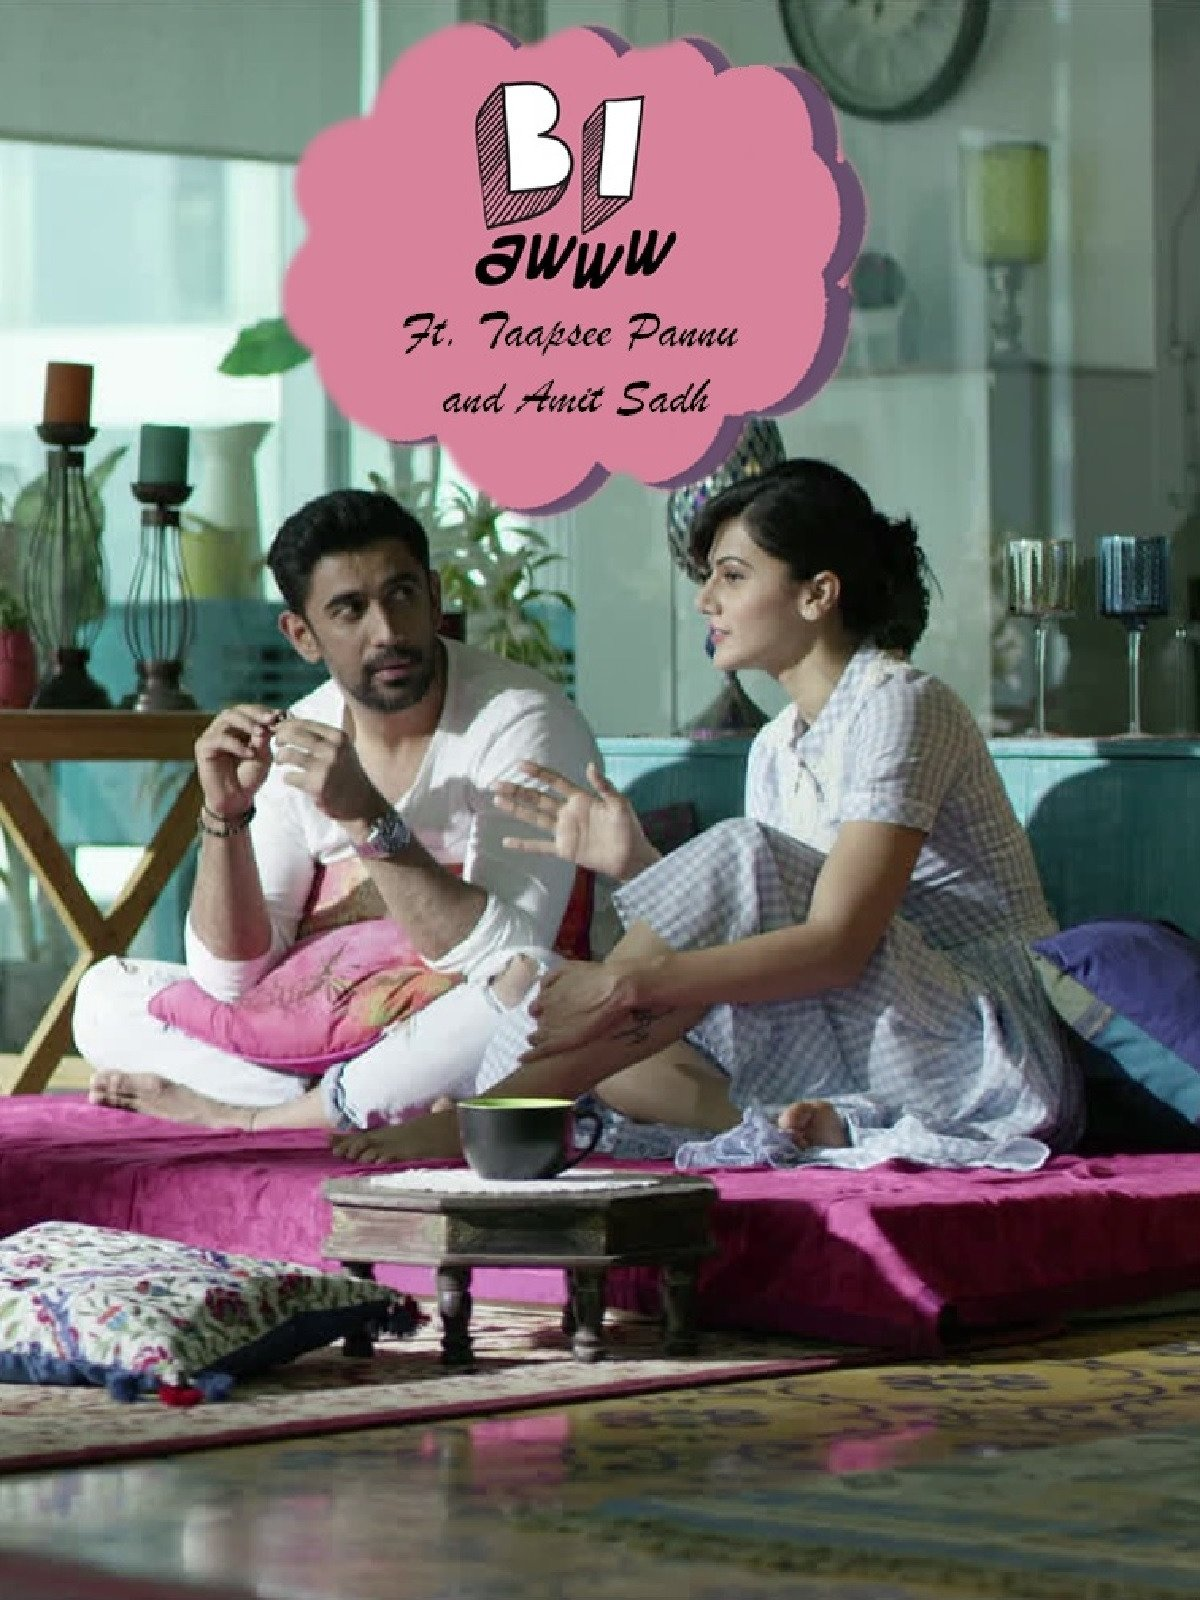 Clip: BI Aww Ft. Taapsee Pannu and Amit Sadh on Amazon Prime Video UK